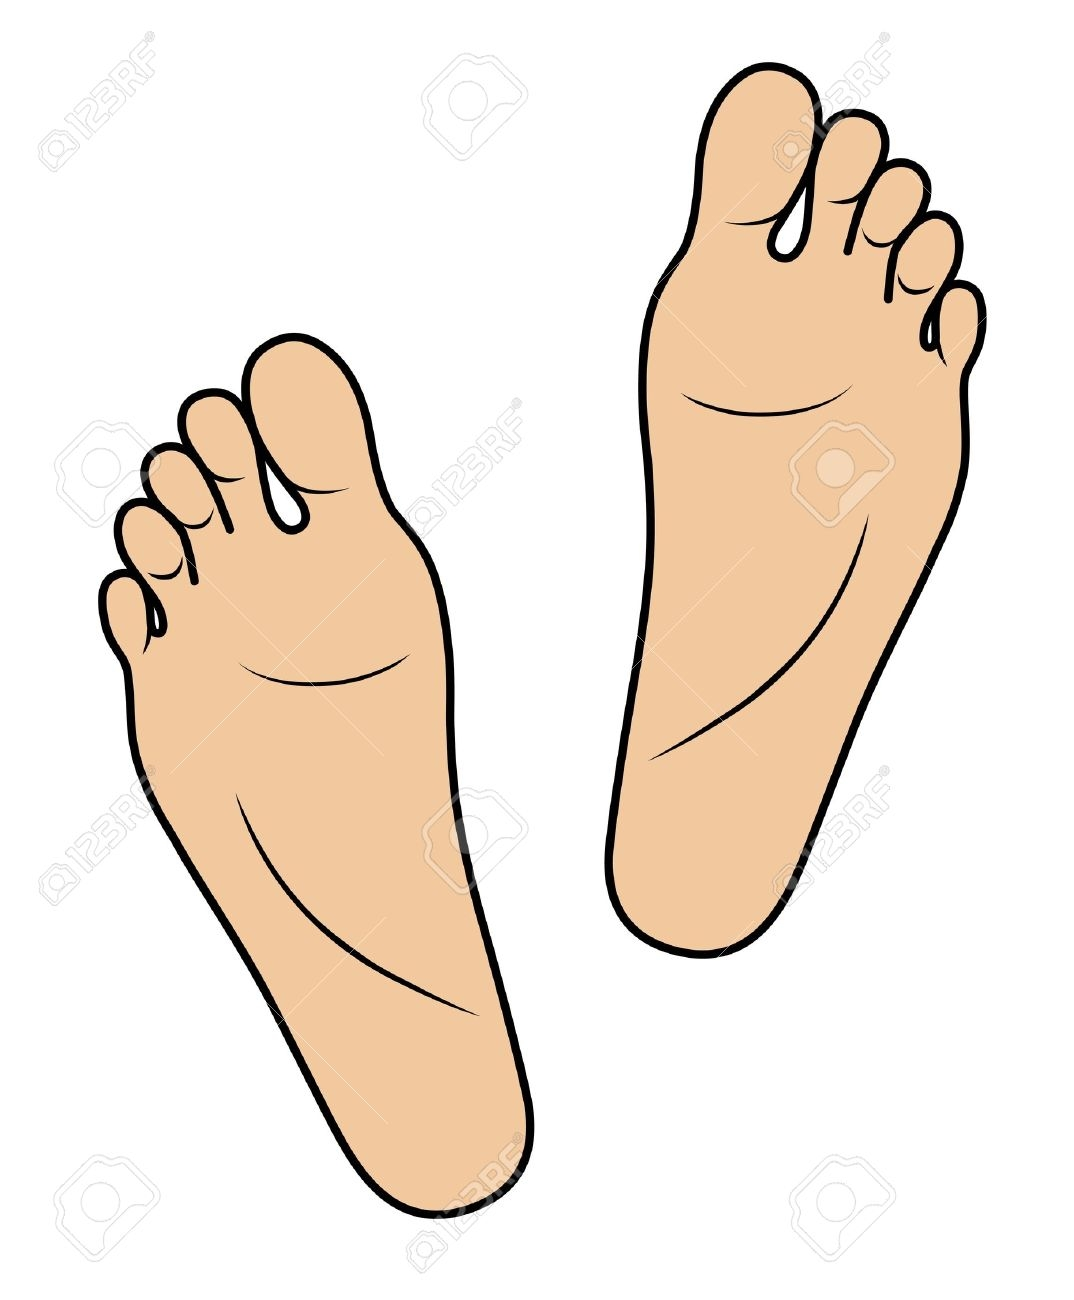 Feet clipart, Feet Transparent FREE for download on.